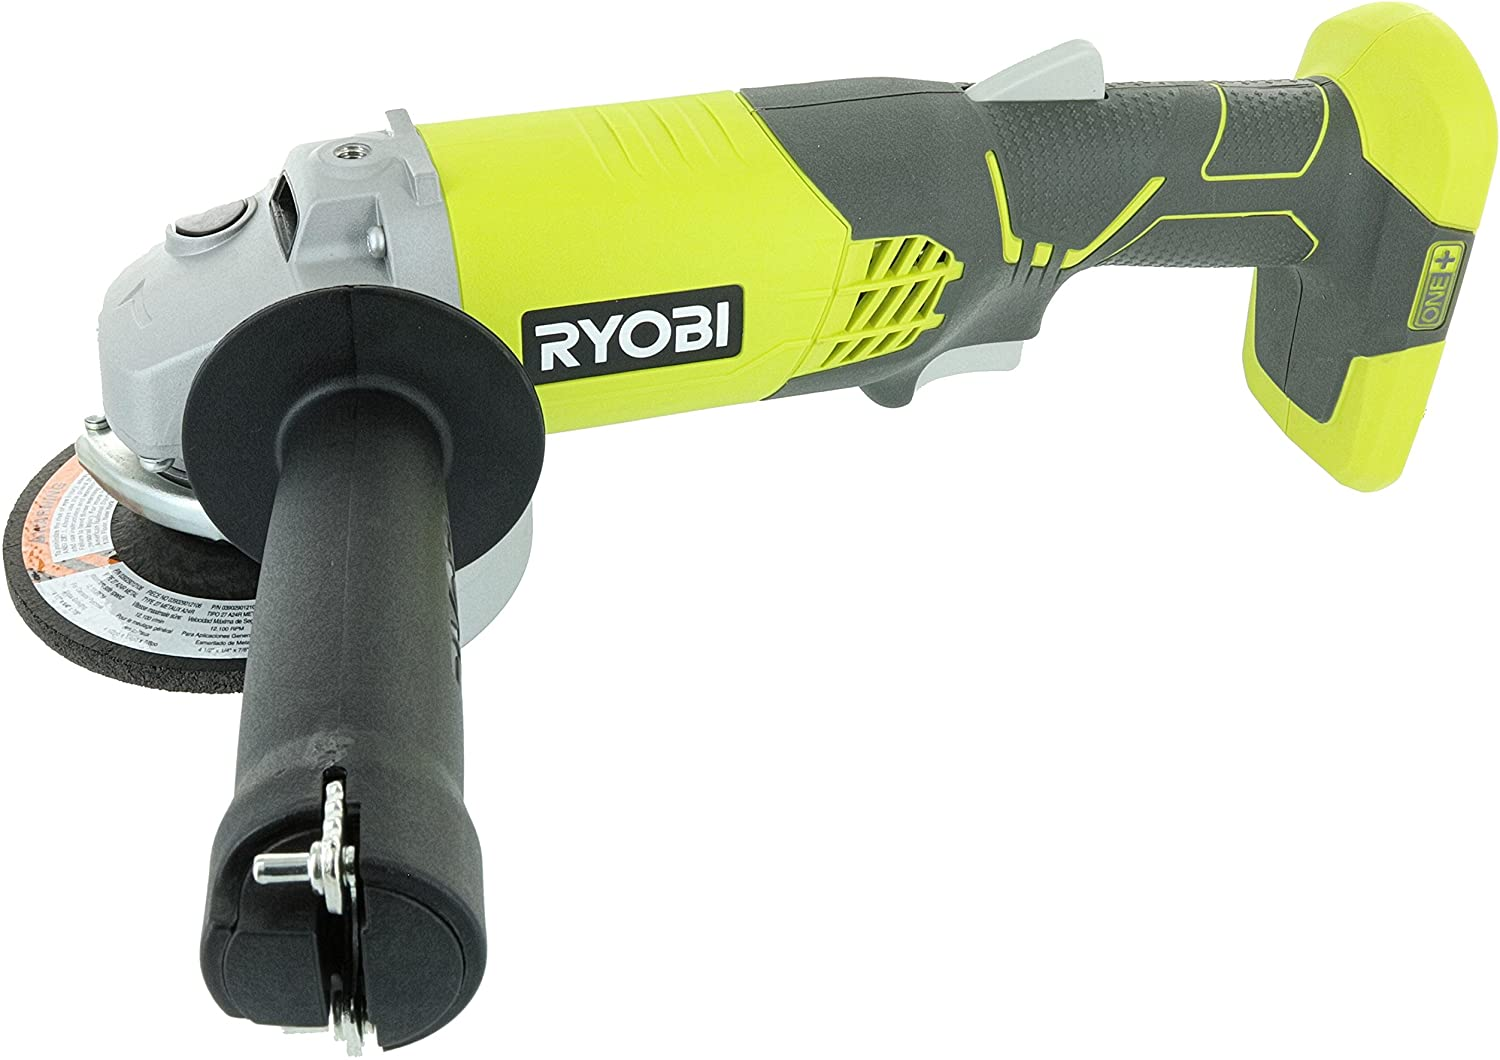 Ryobi P421 6500 RPM 4 1 2 Inch 18-Volt One Lithium Ion-Powered Angle Grinder Battery Not Included, Power Tool Only